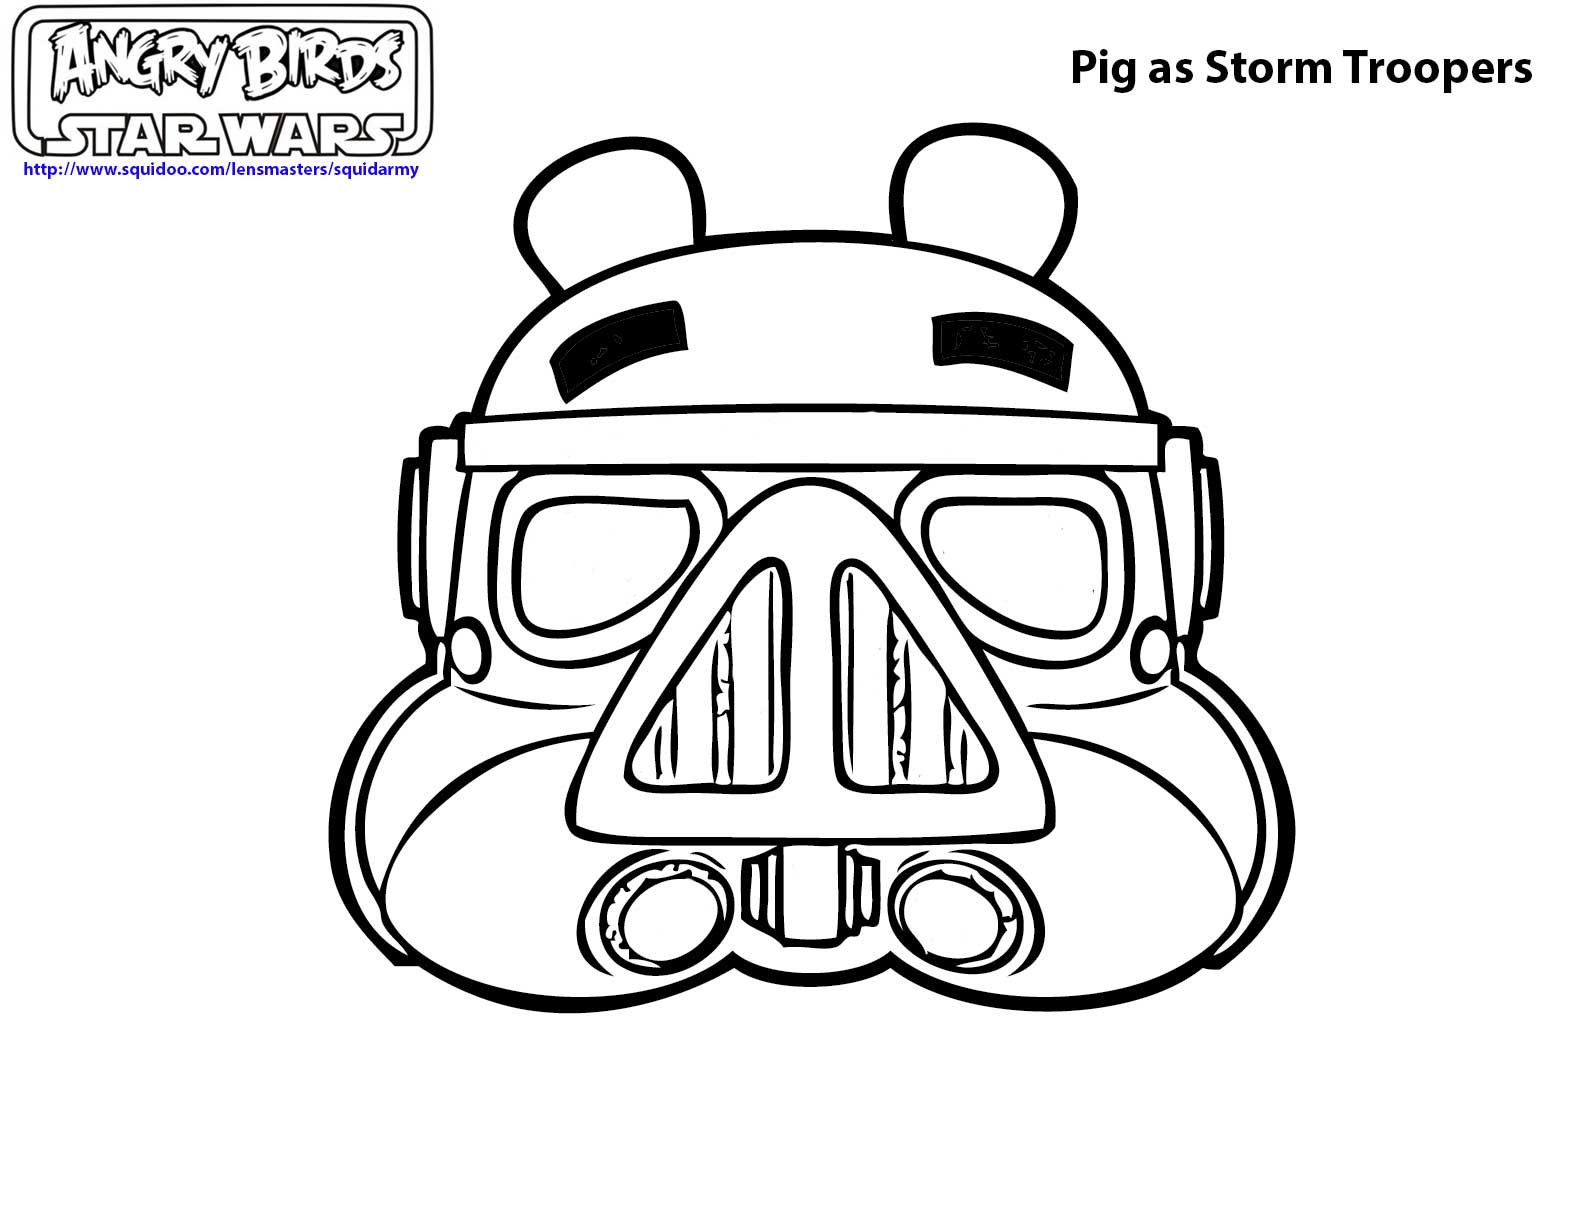 Top 25 Free Printable Star Wars Coloring Pages  - star wars coloring pages printable